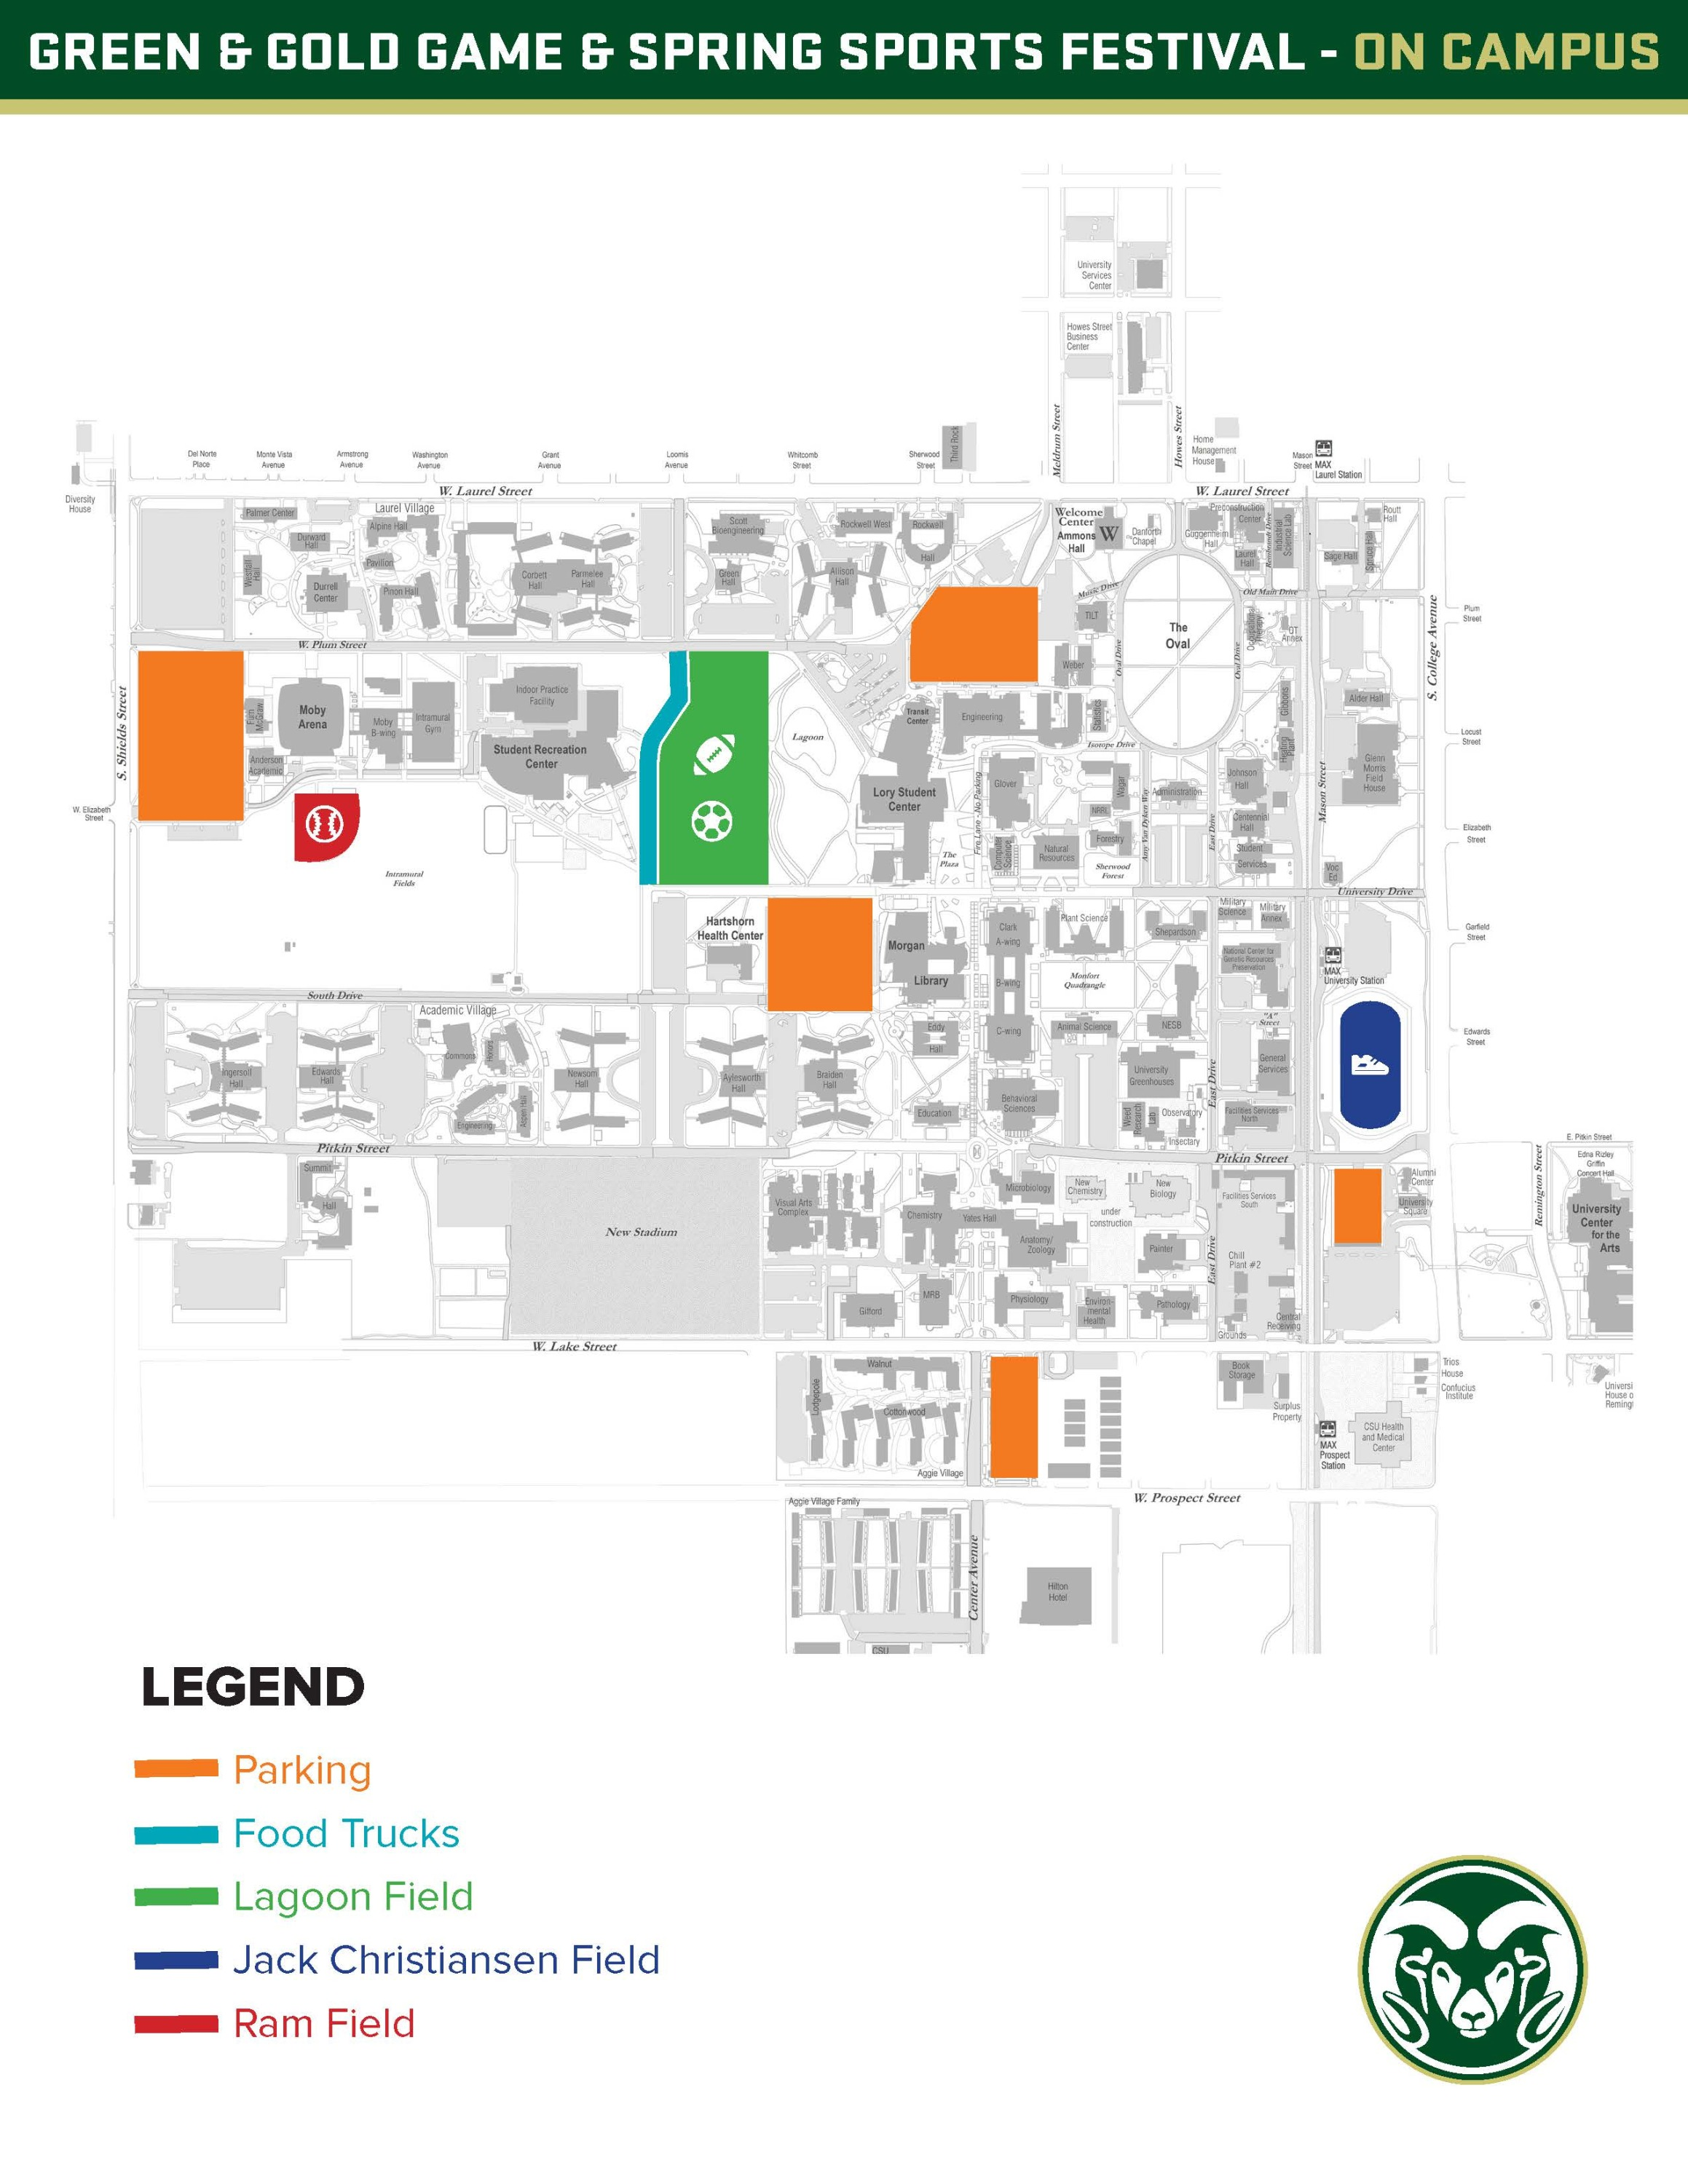 Green Gold Game And Spring Sports Festival Saturday On CSU - Csu campus map